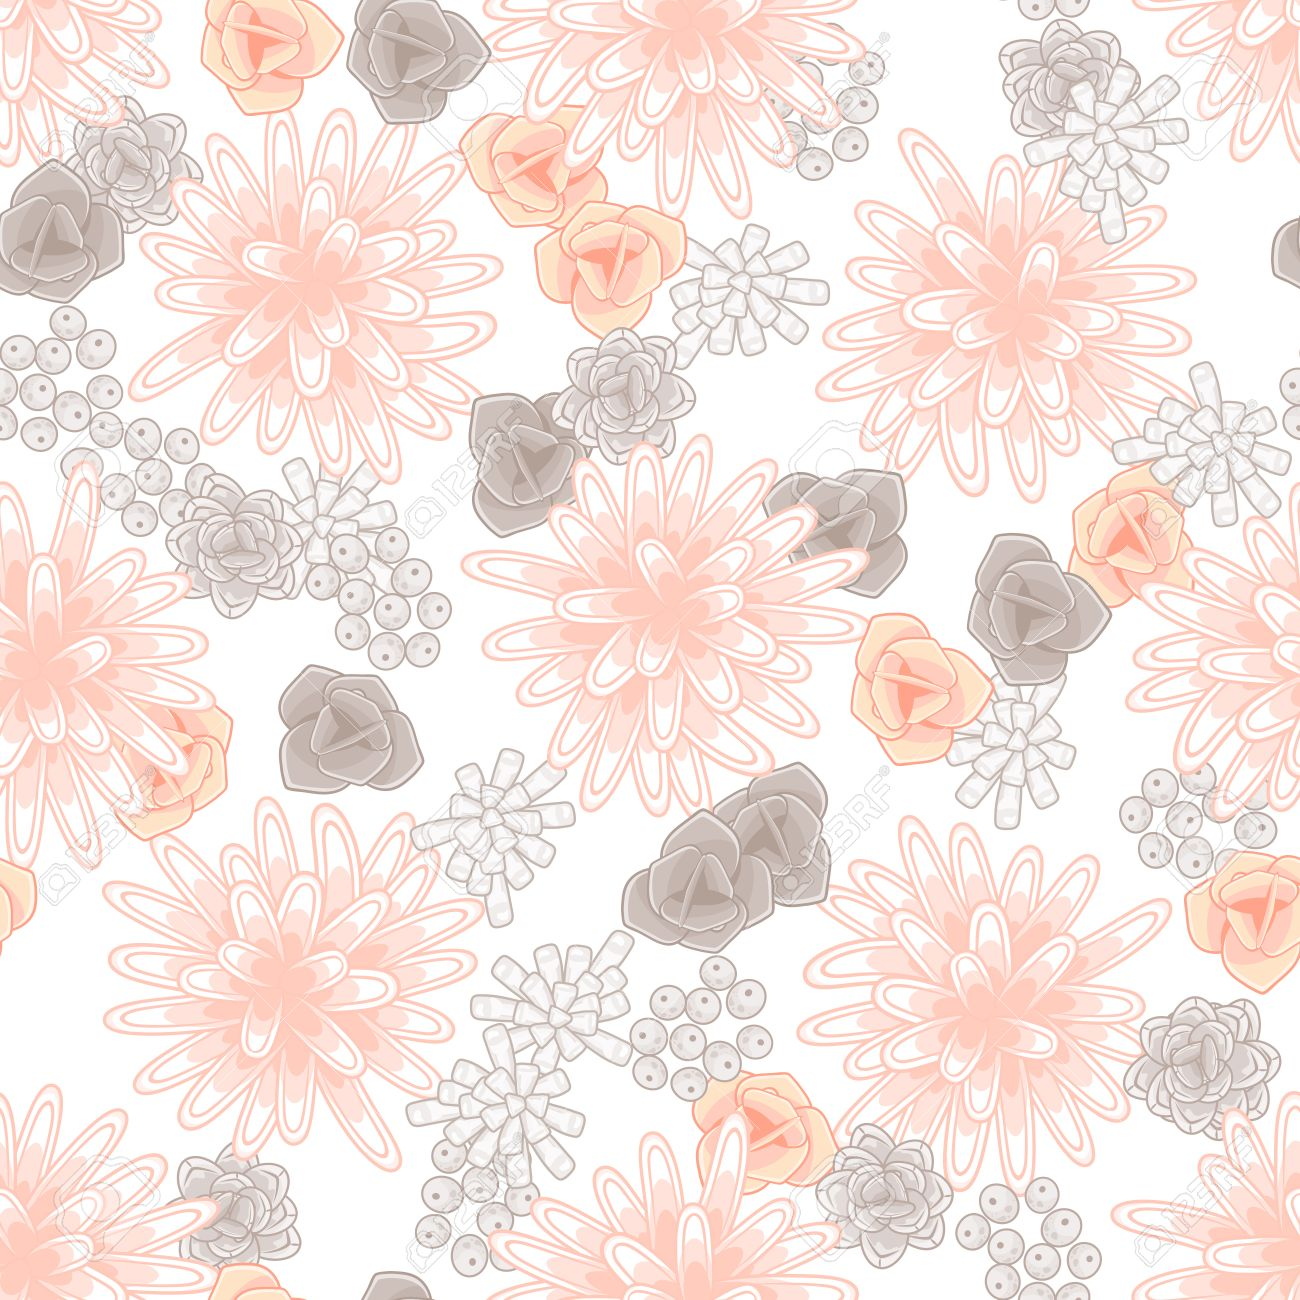 Pink floral seamless vector background floral hrysanthemum seamless - Mums Flowers And Roses Seamless Pink Pattern Feminine Light Chrysanthemum Floral Background Stock Vector